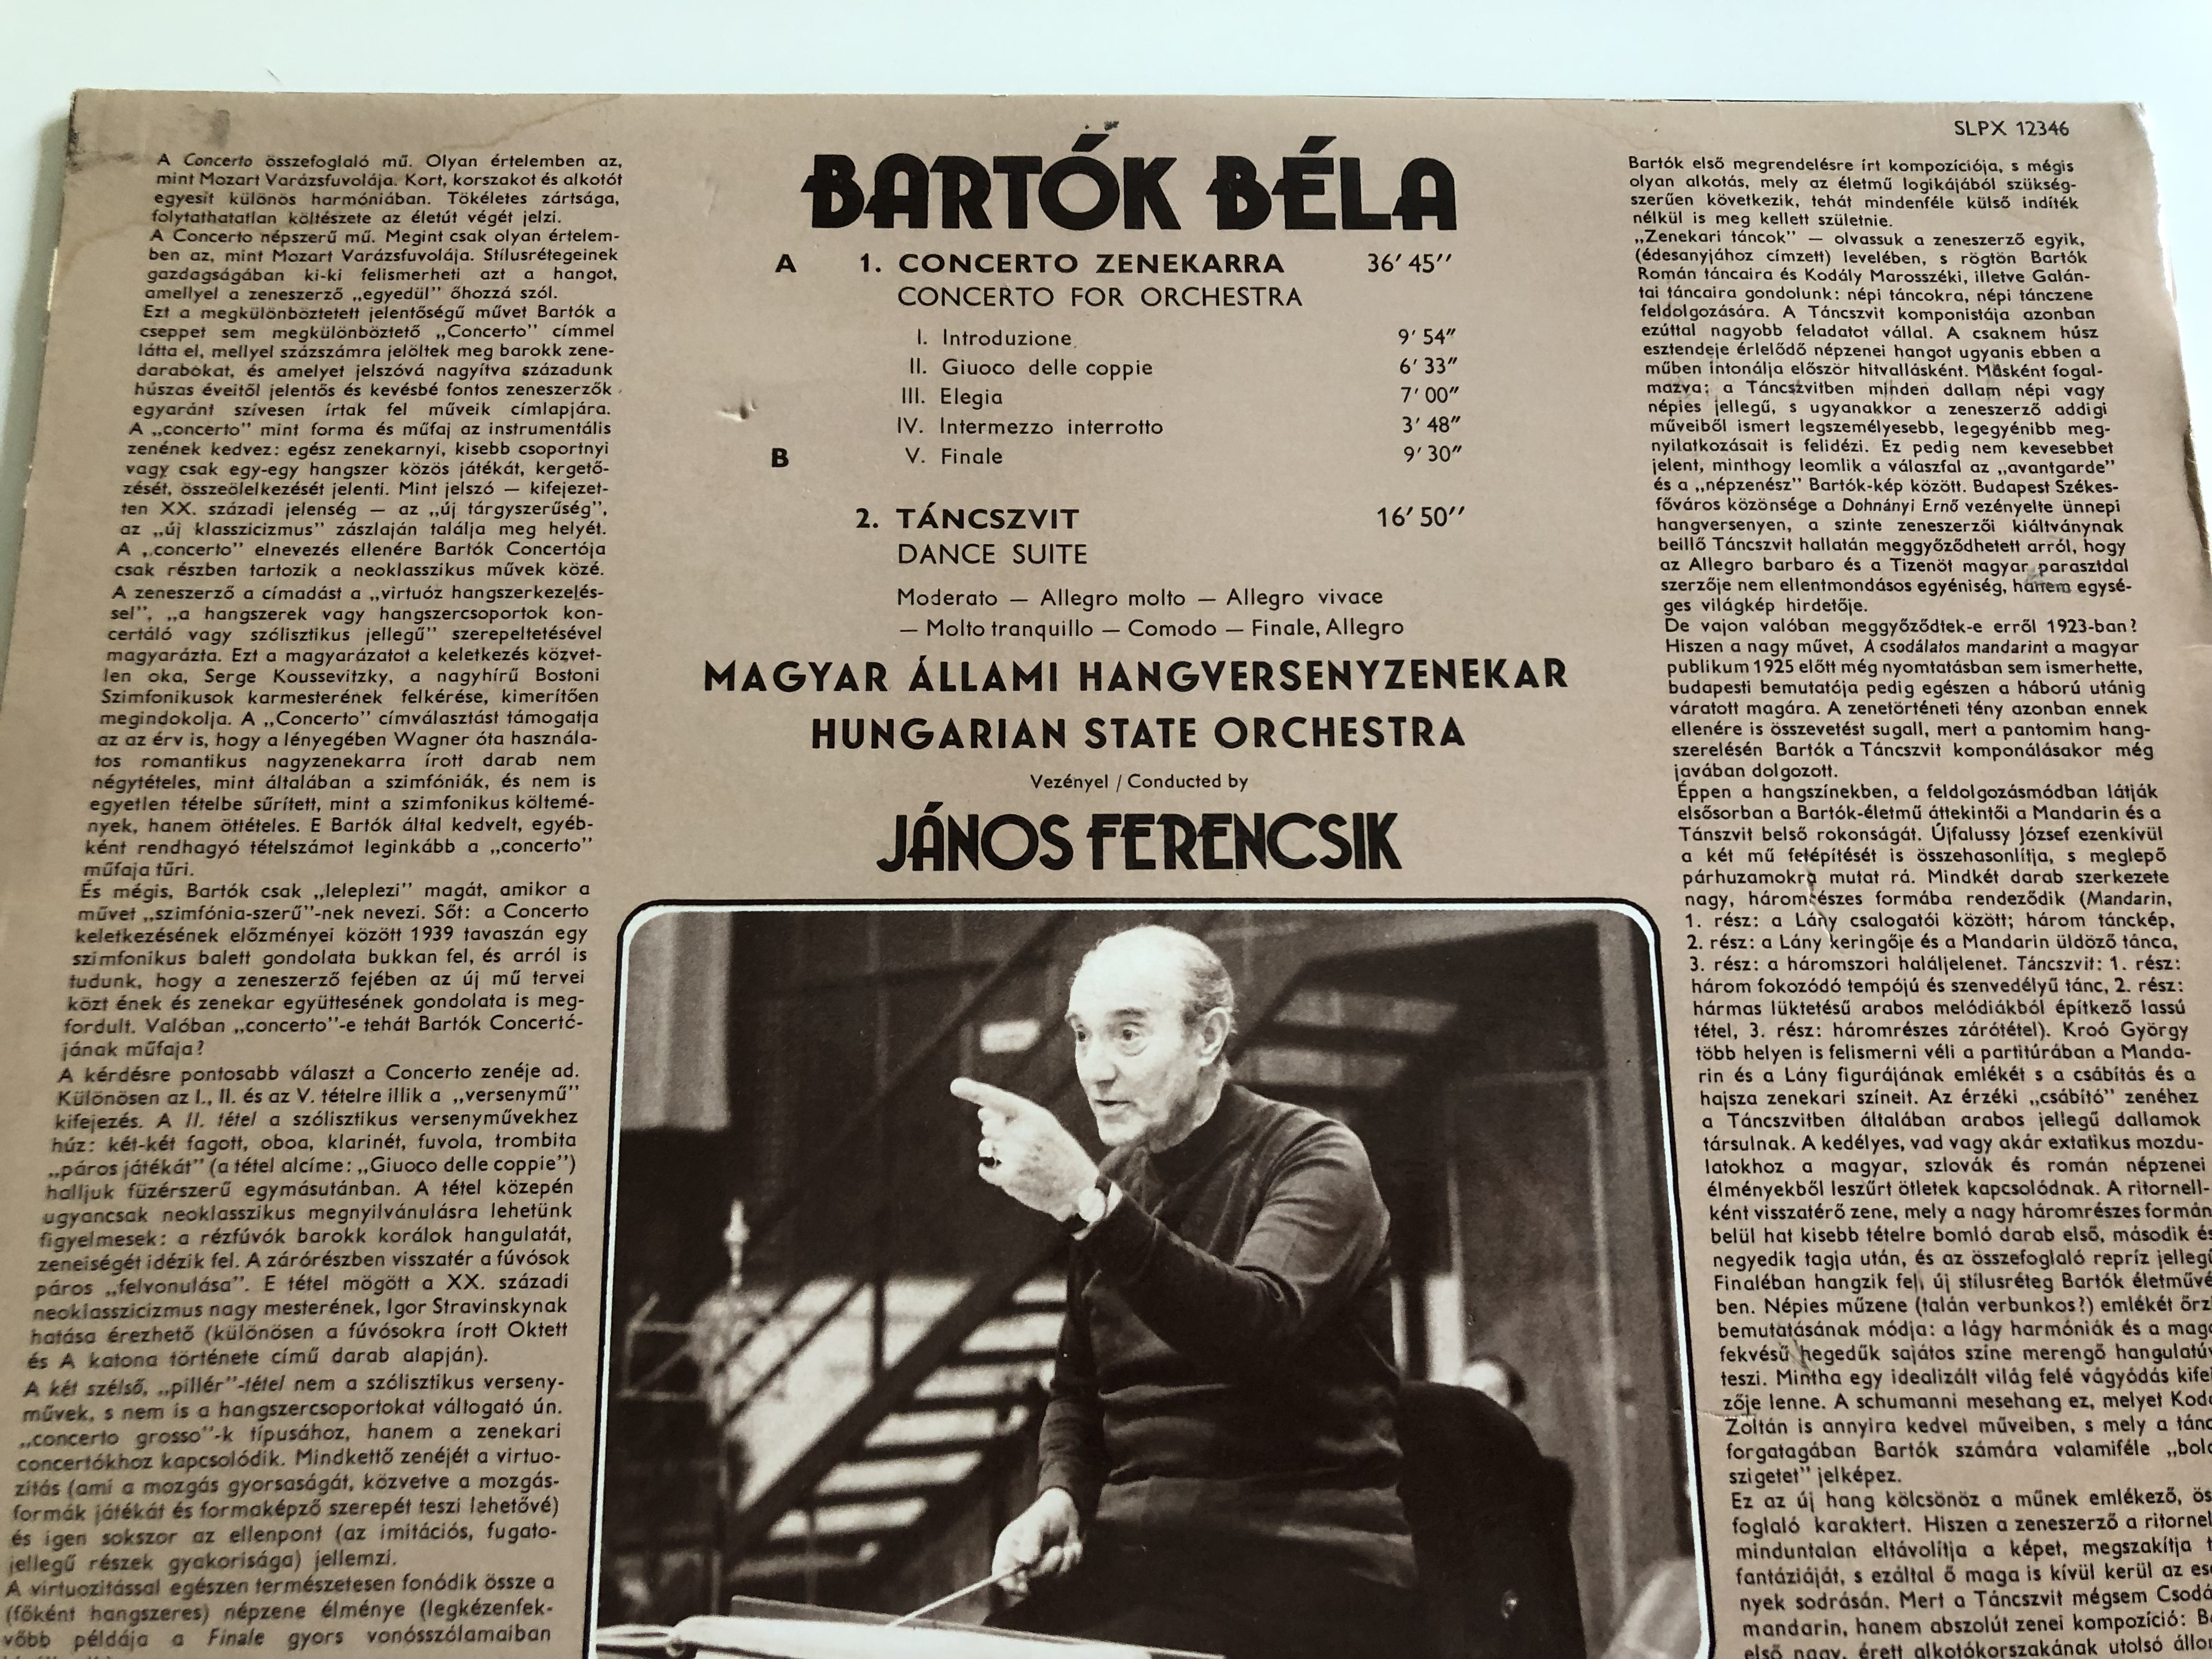 bart-k-b-la-concerto-dance-suite-hungarian-state-orchestra-conducted-j-nos-ferencsik-hungaroton-lp-stereo-slpx-12346-3-.jpg